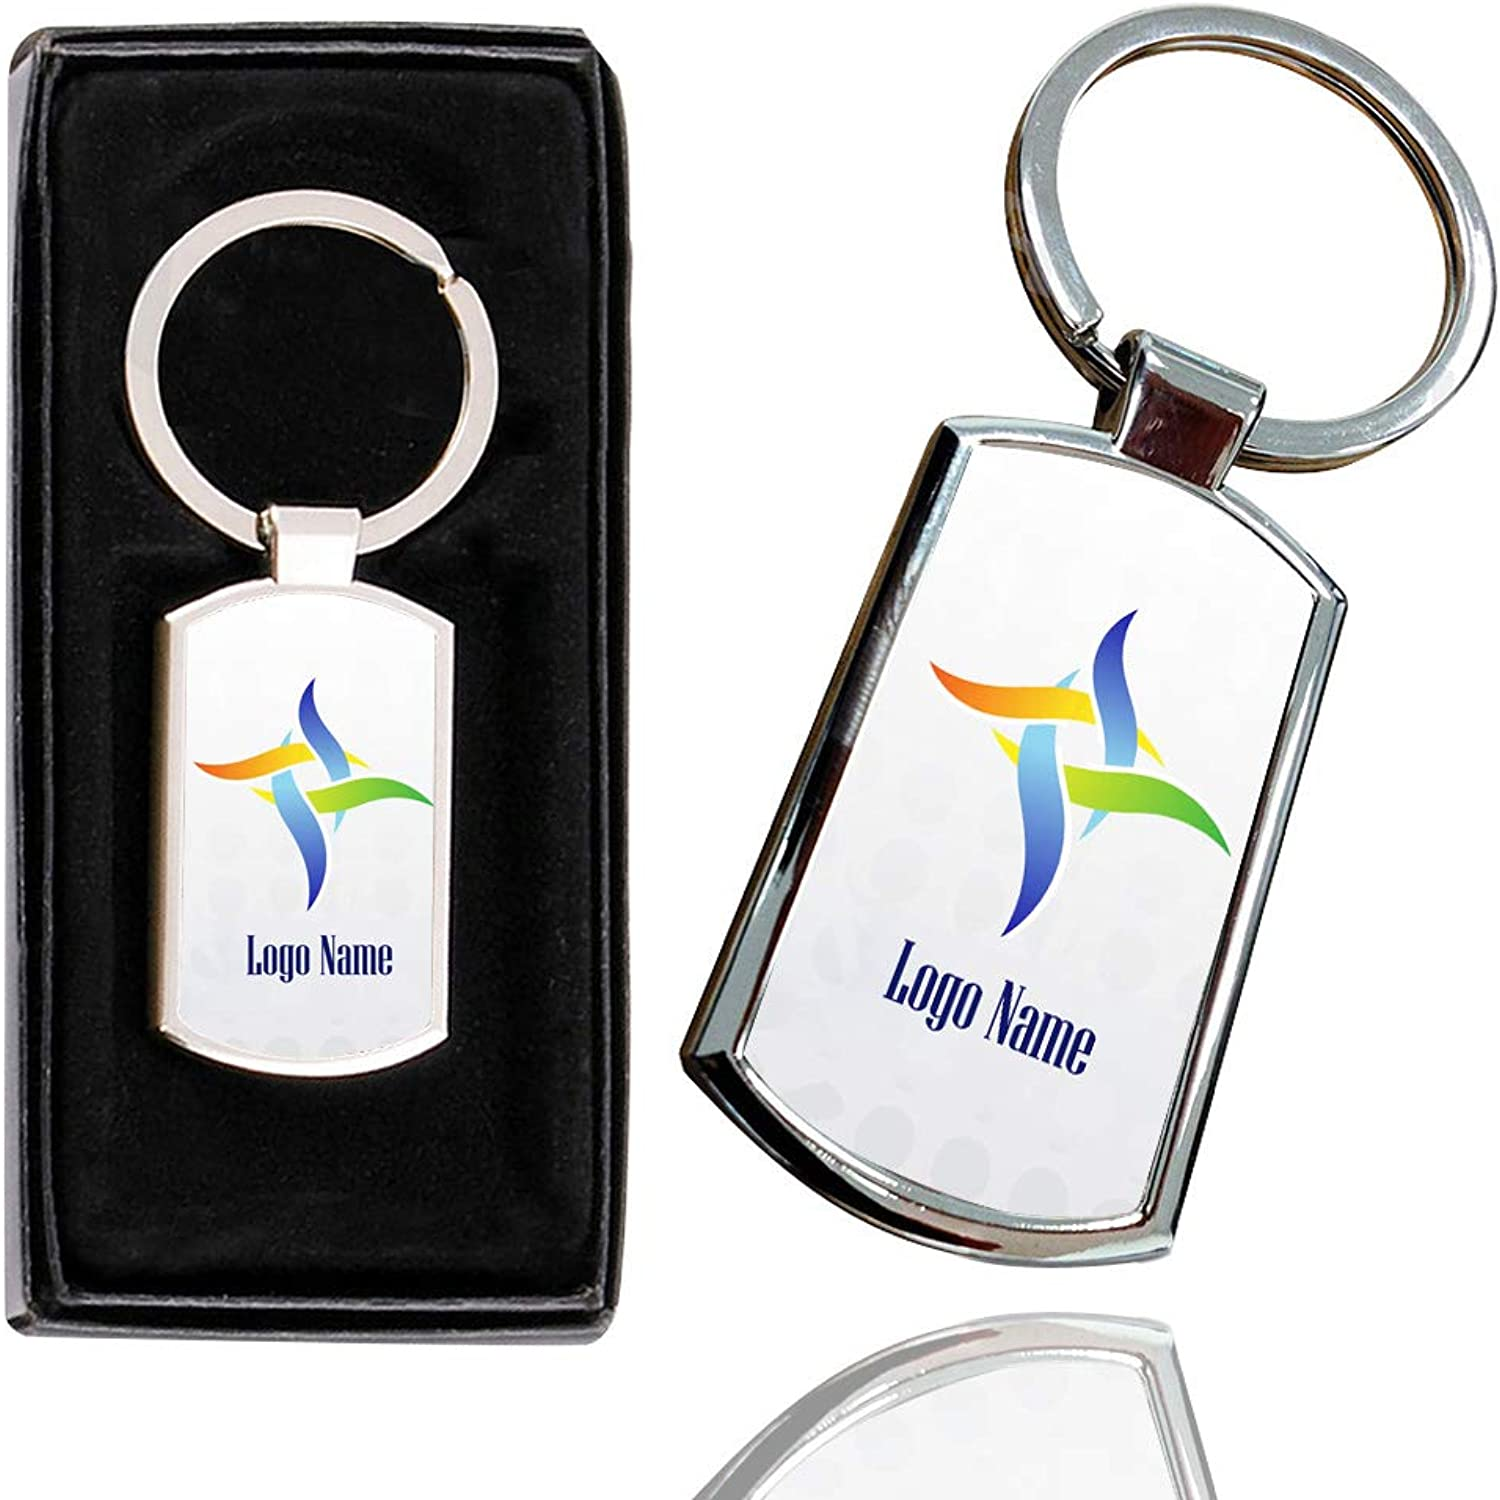 ITronixs WHOLESALE BUSINESS LOGO BRAND PROMOTIONAL KEYRINGPHOTO TEXT, COOL DESIGN PROMOTE YOUR COMPANY  CREATE YOUR OWN WITH ANY IMAGE, LOGO TEXT STYLISH KEYRING BOX (Pack of 20)